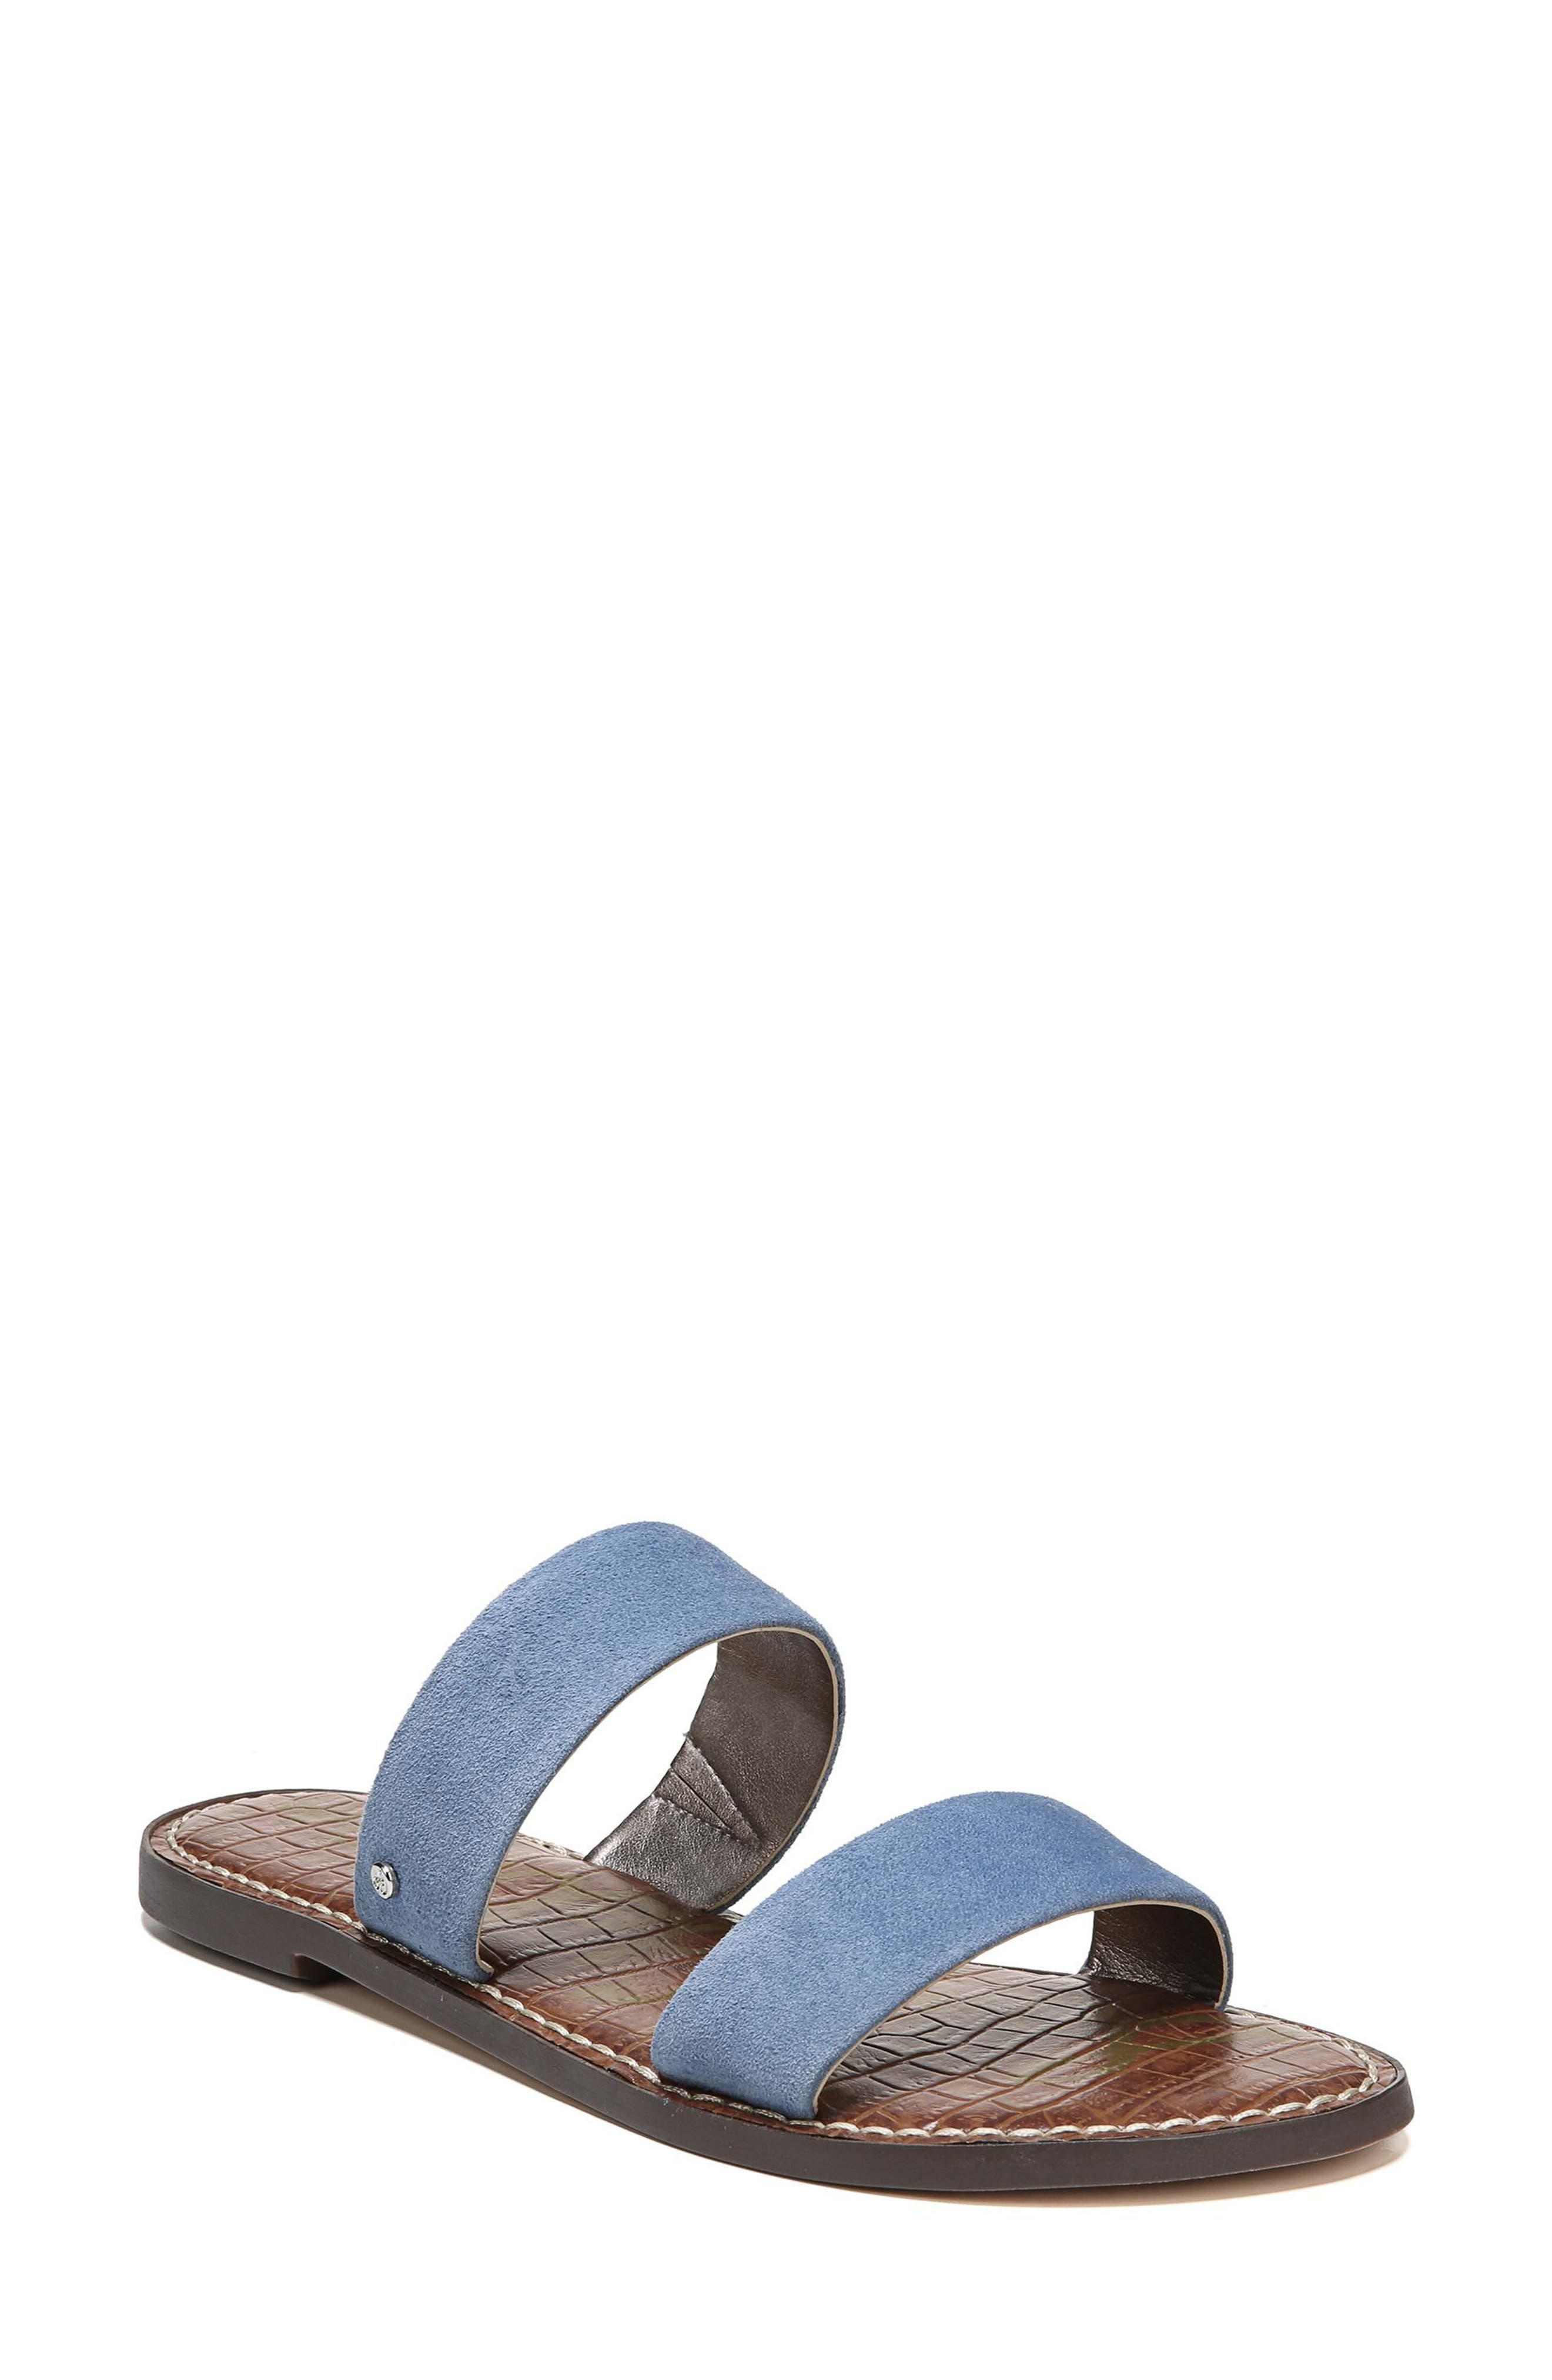 The Perfect Sandals Unisex Bright T04102923